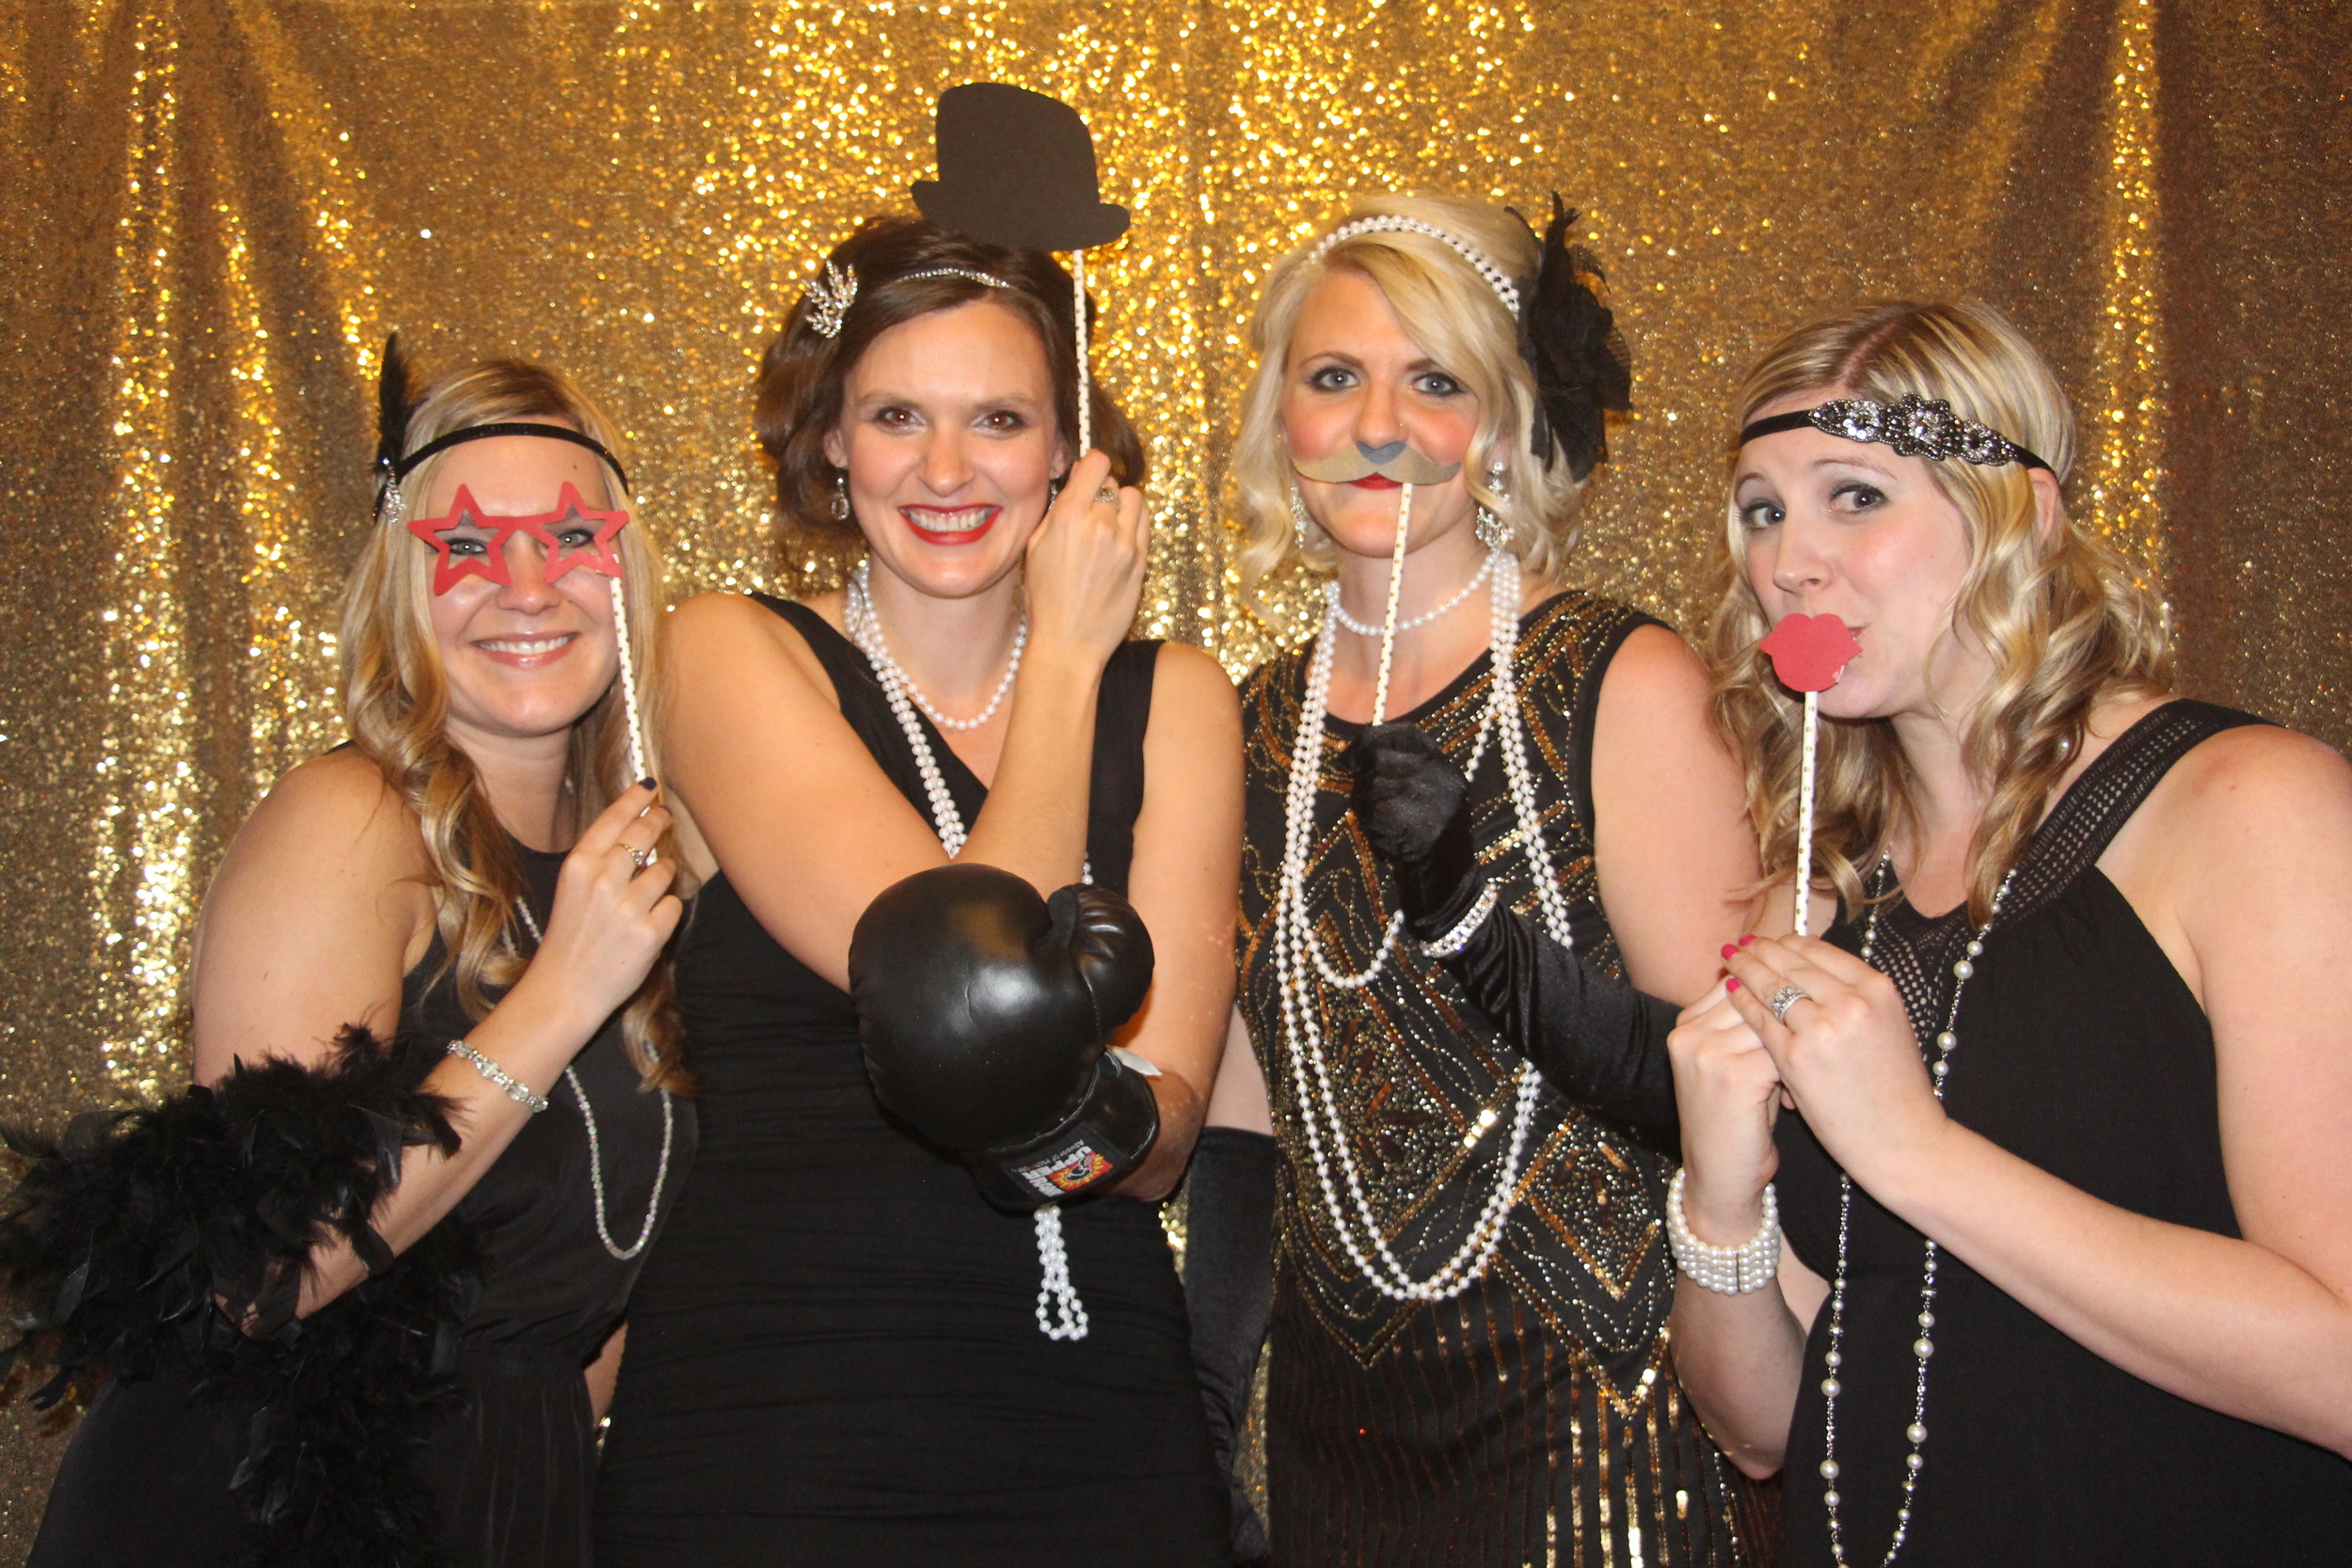 1920s Photo Booth pic